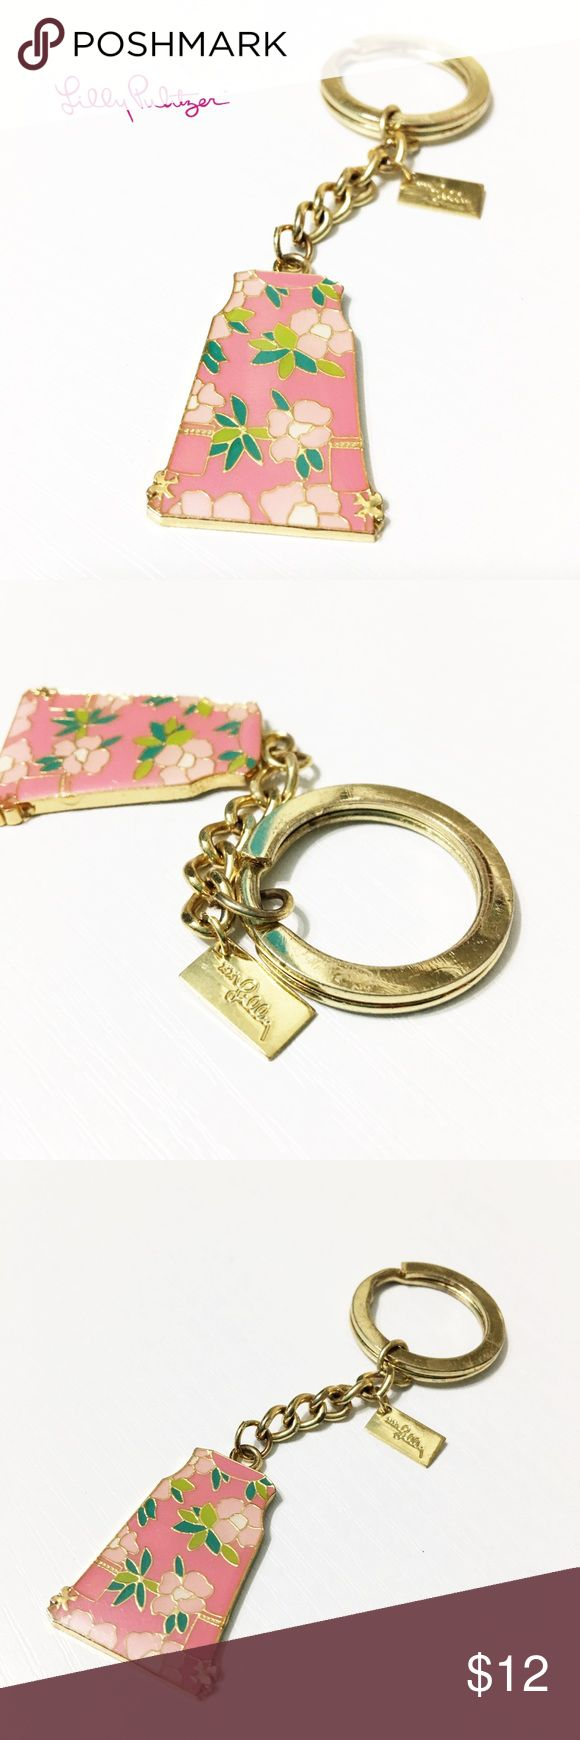 Lilly Pulitzer Shift Dress Keychain The perfect place to keep your keys! From Lilly Pulitzer and adorable. In great condition. Questions? Please ask. Sorry, no trades. Bundle for a discount! Lilly Pulitzer Accessories Key & Card Holders